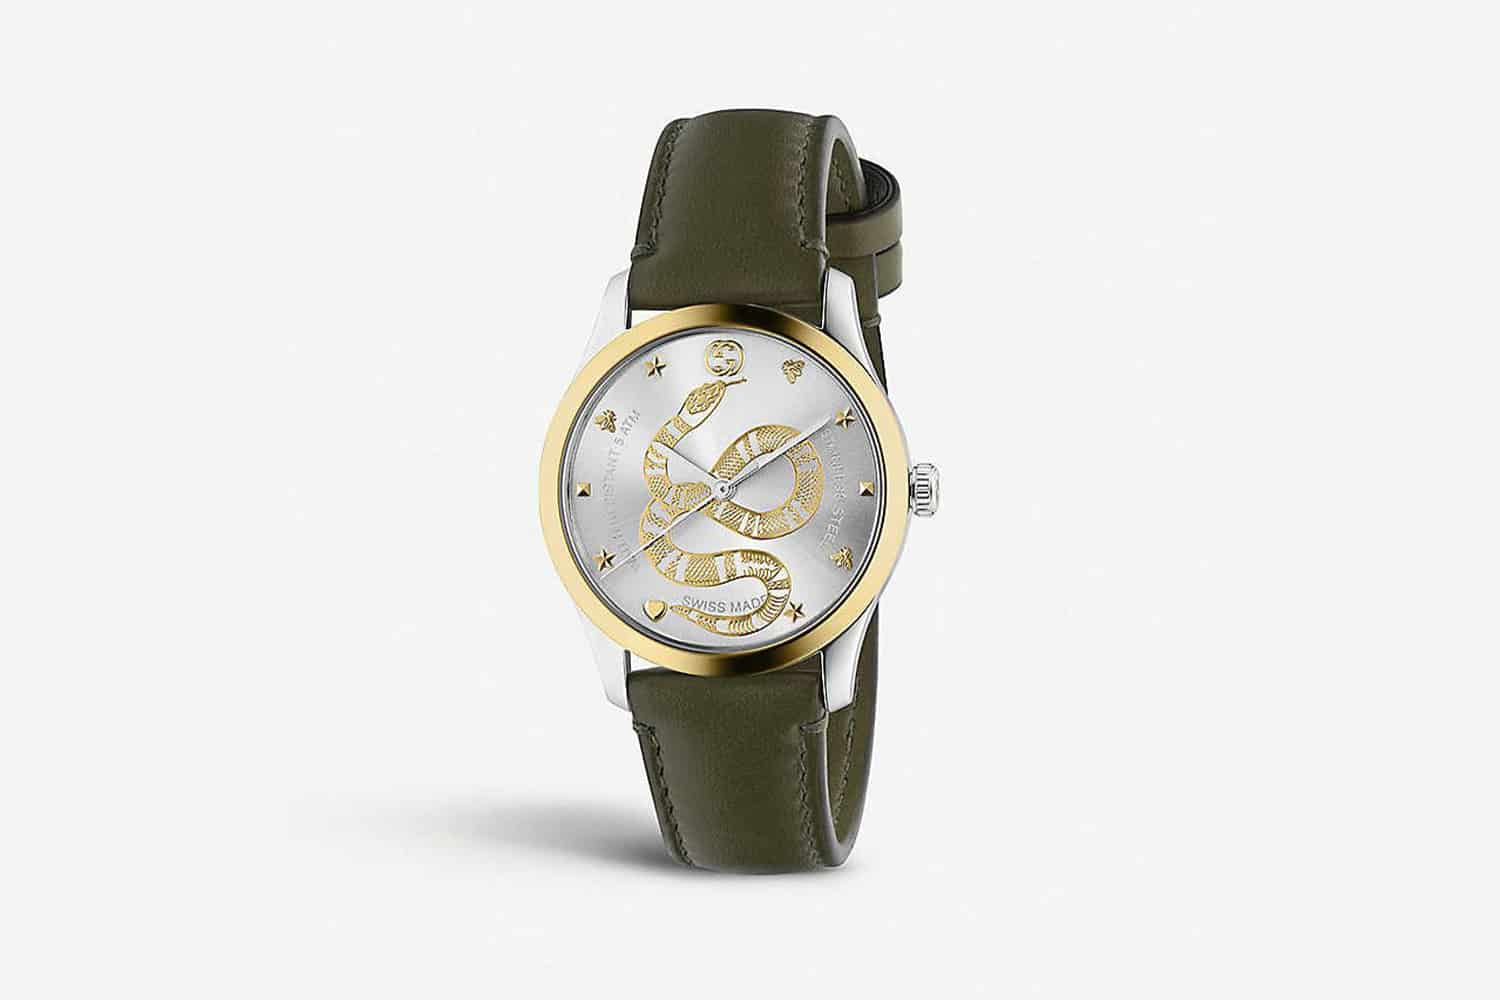 Gucci-G-Timeless-stainless-steel-and-leather-watch